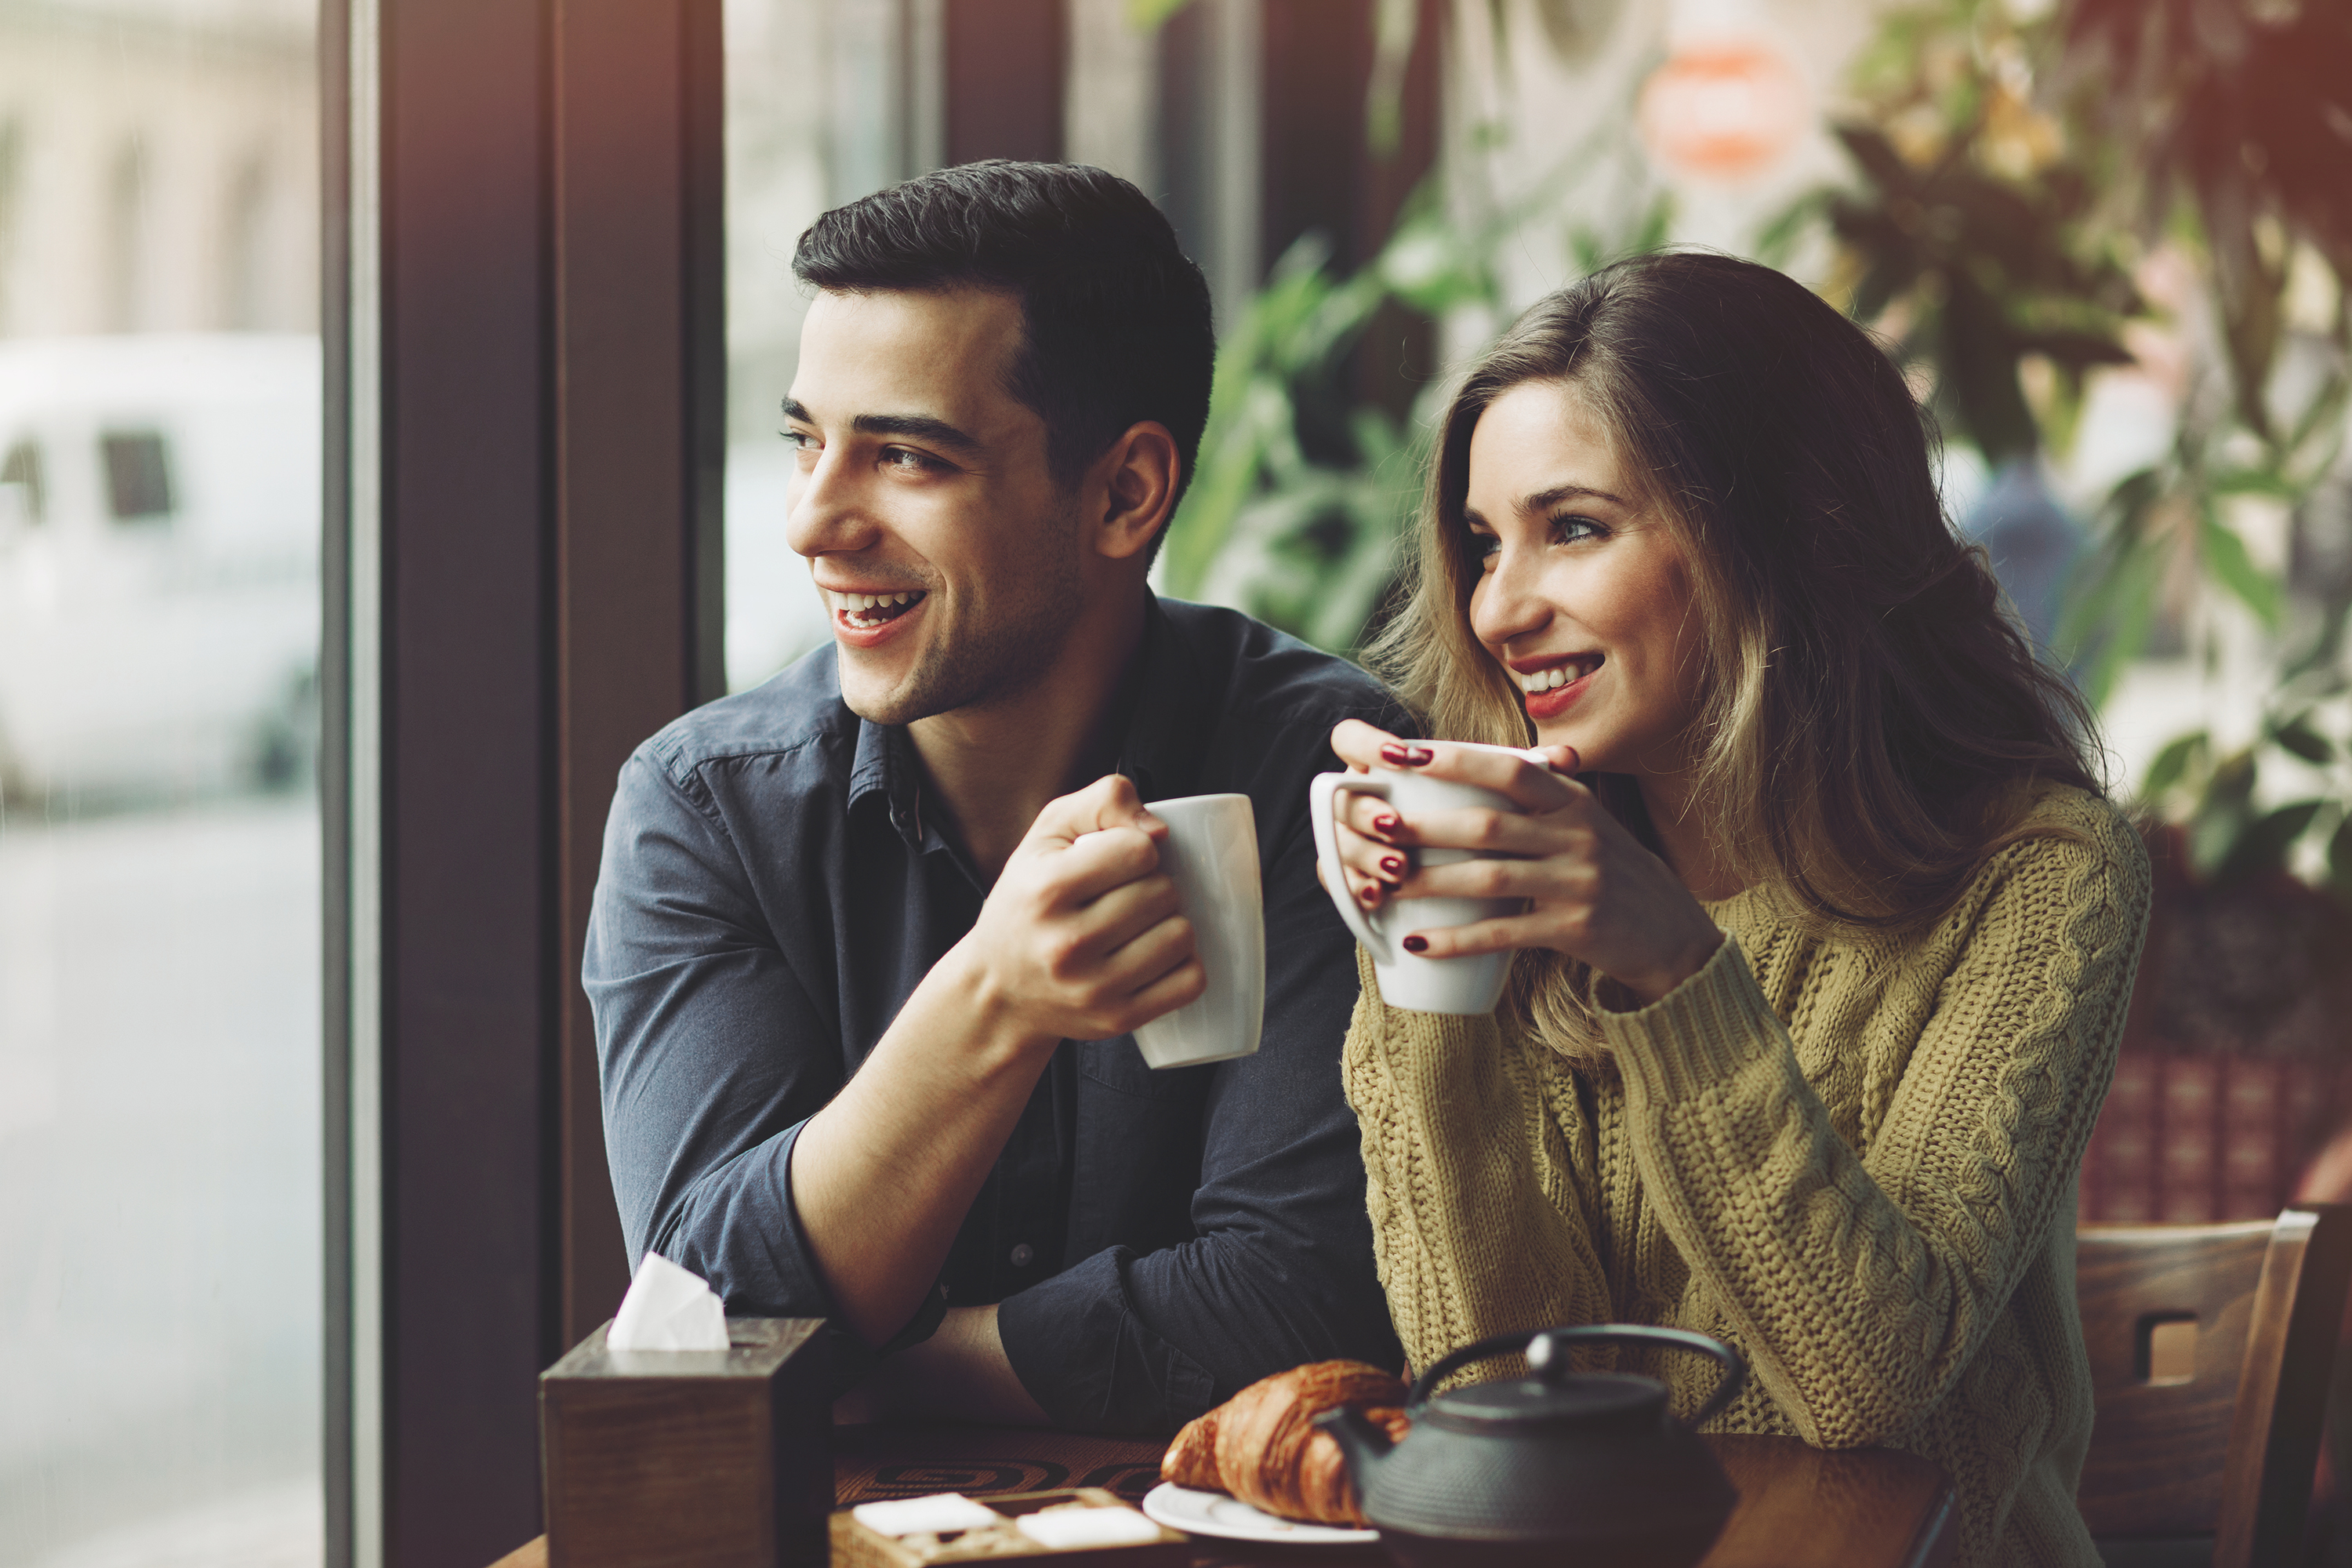 couple-in-love-drinking-coffee-in-coffee